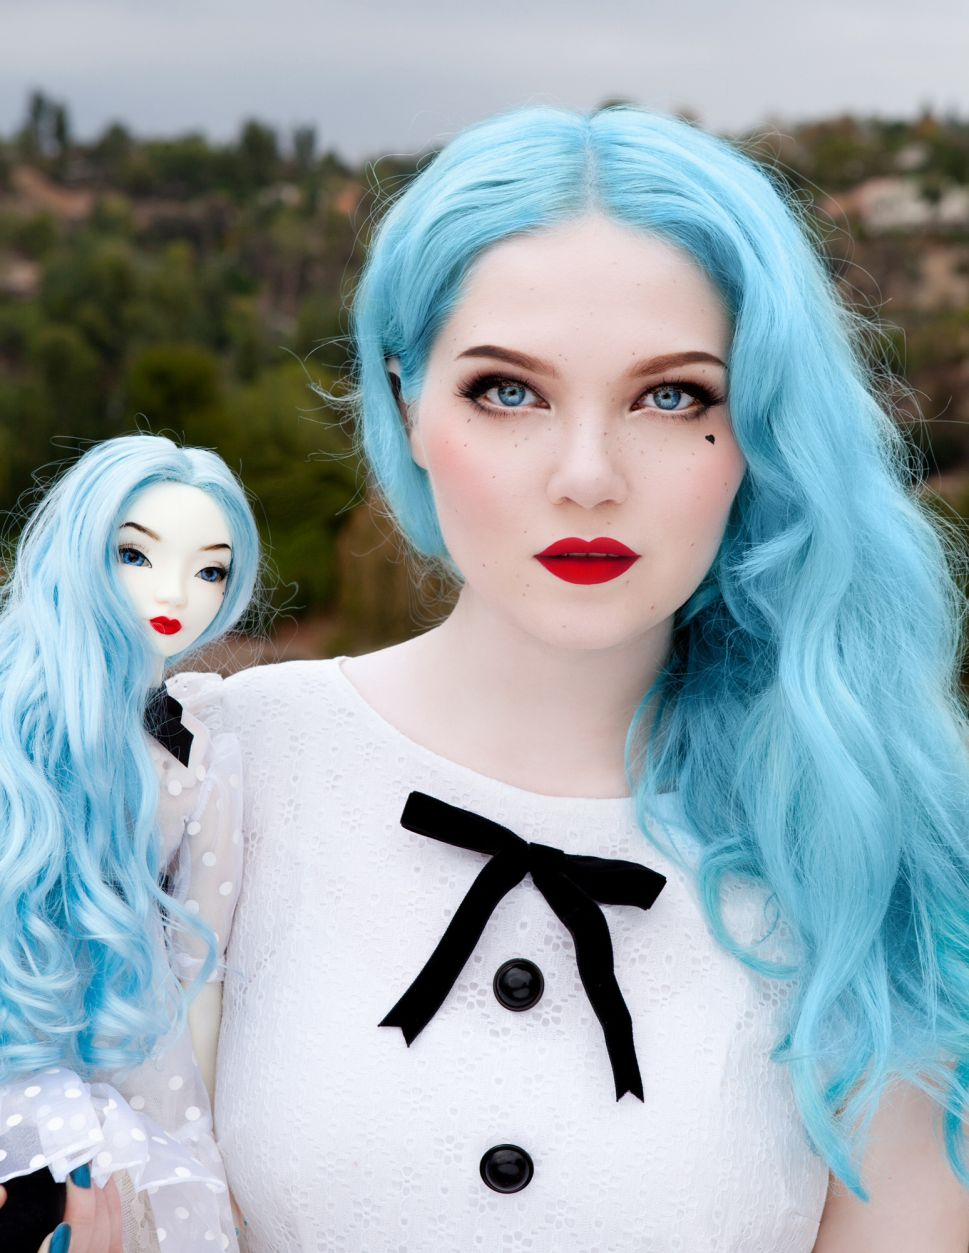 Meet the Doll Maker and Instagram Star Hacked by Richard Prince